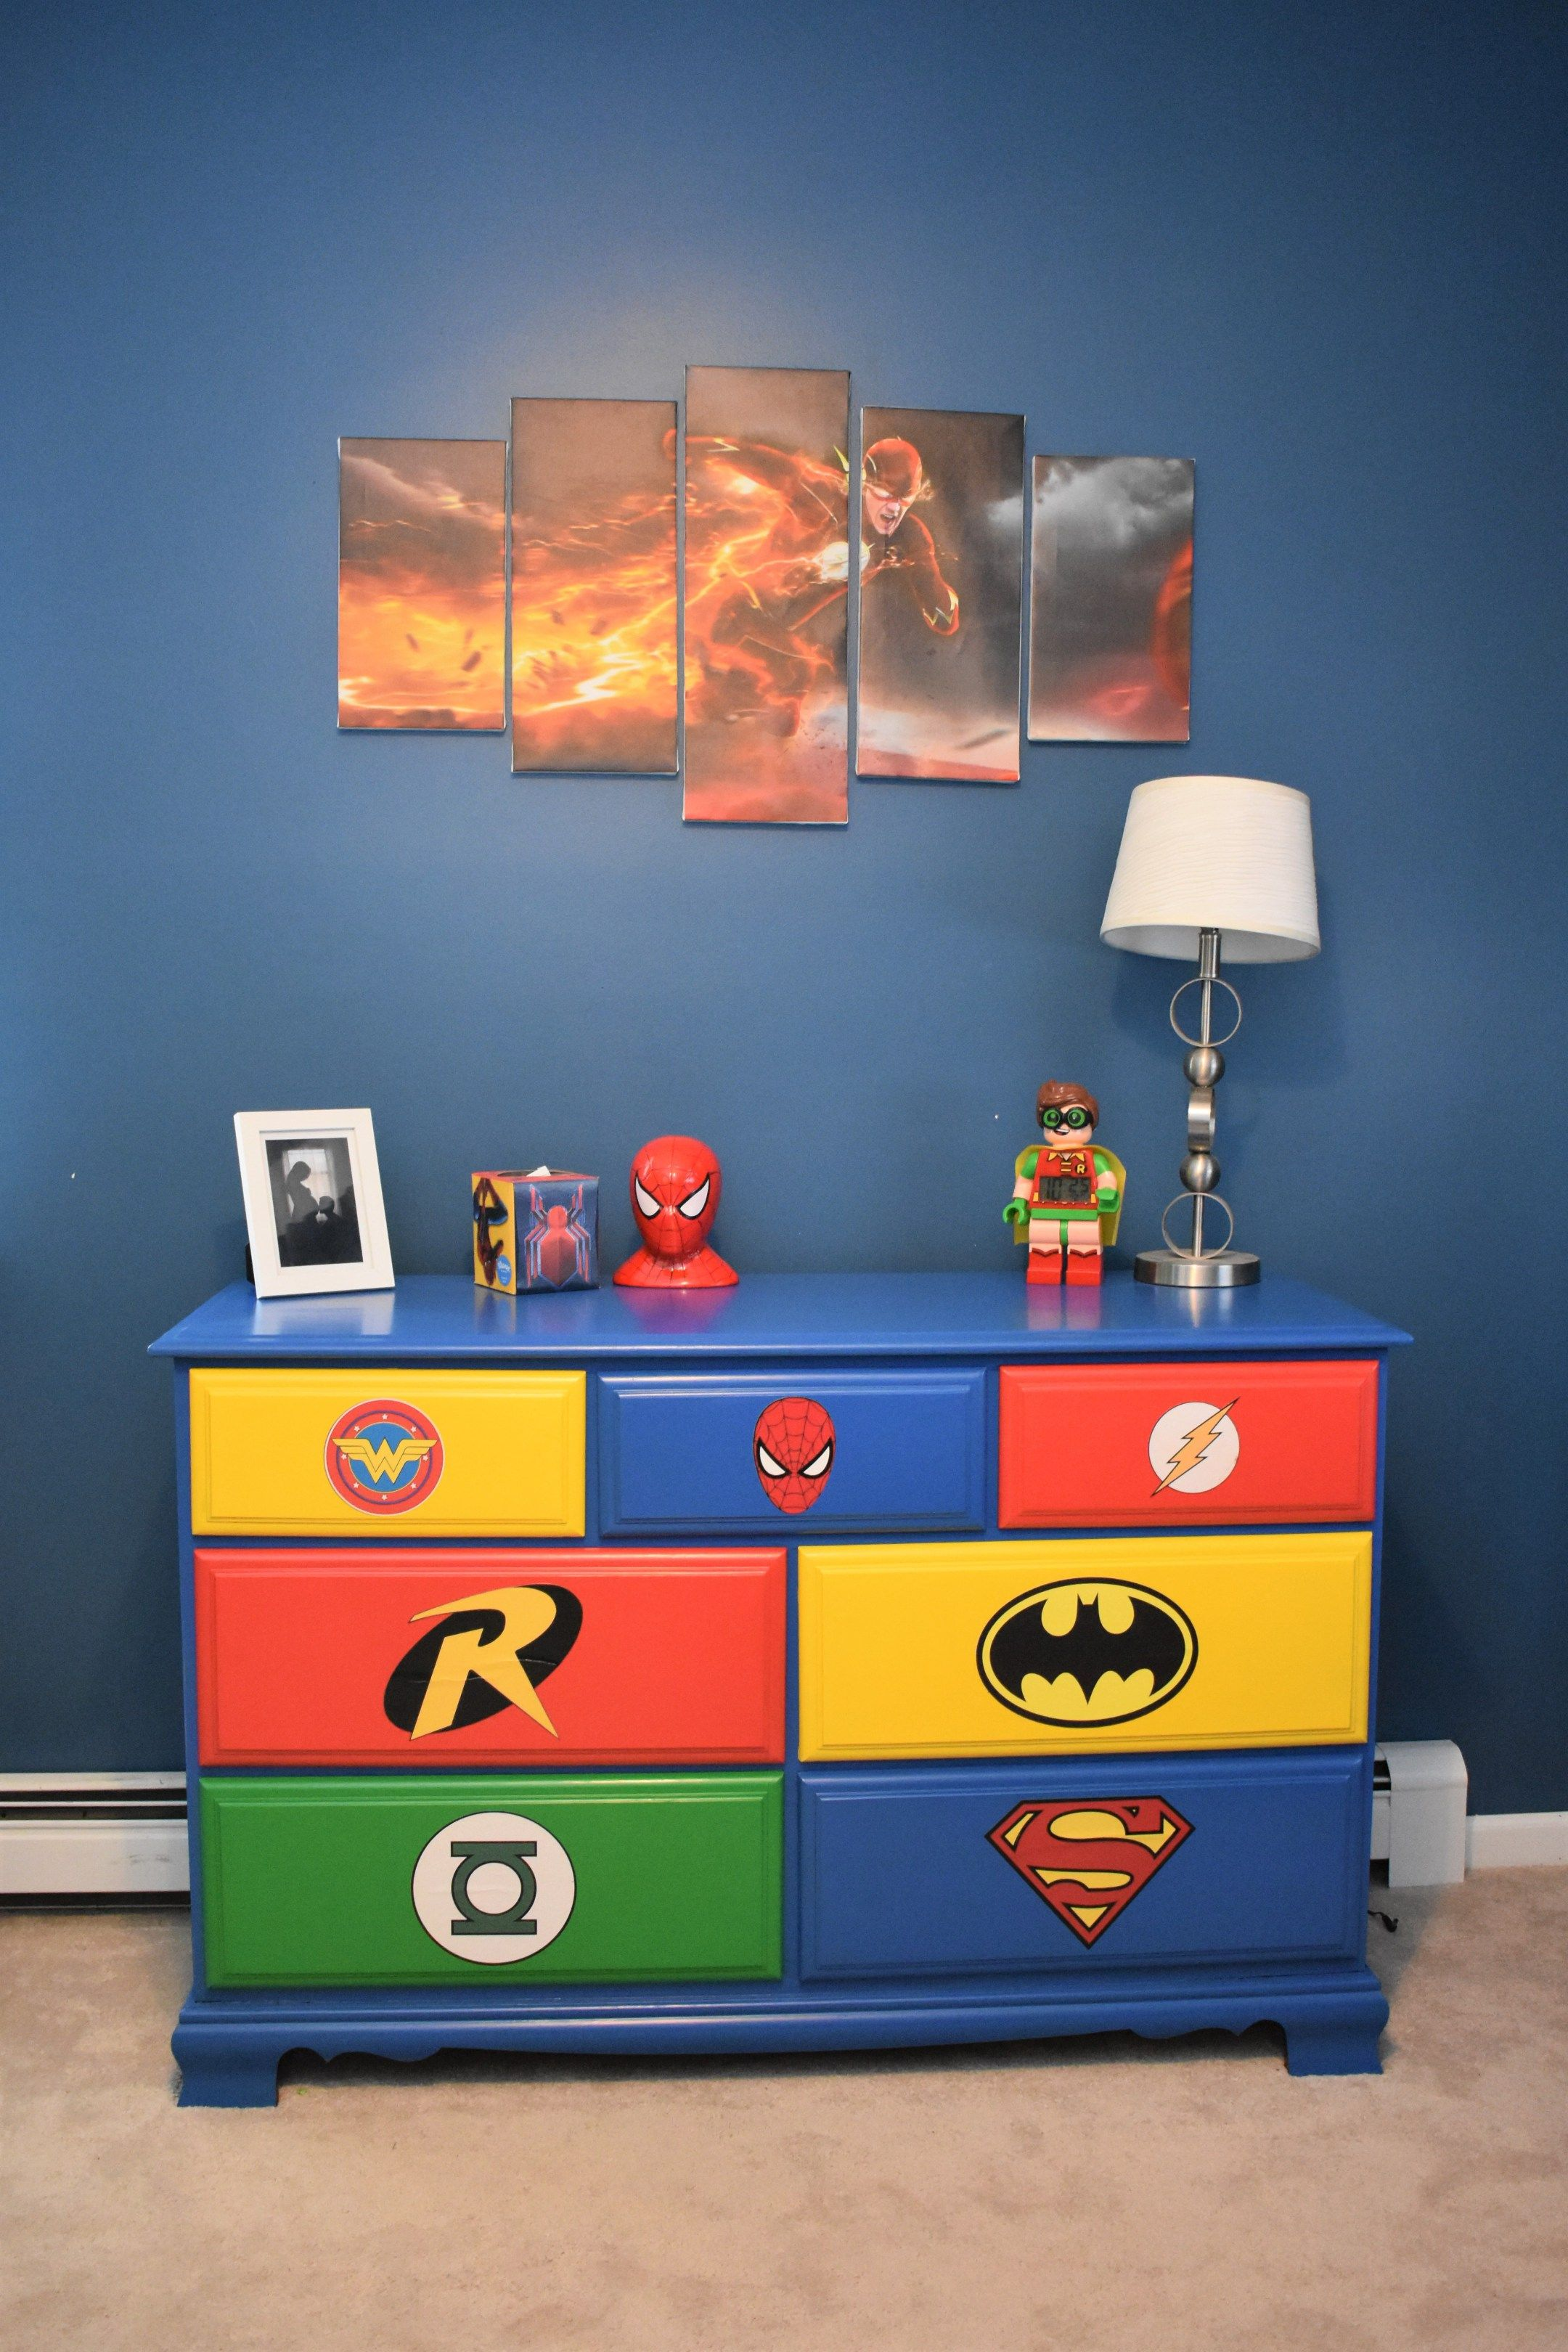 Diy Superhero Room Redeux On A Budget With Images Boy Room